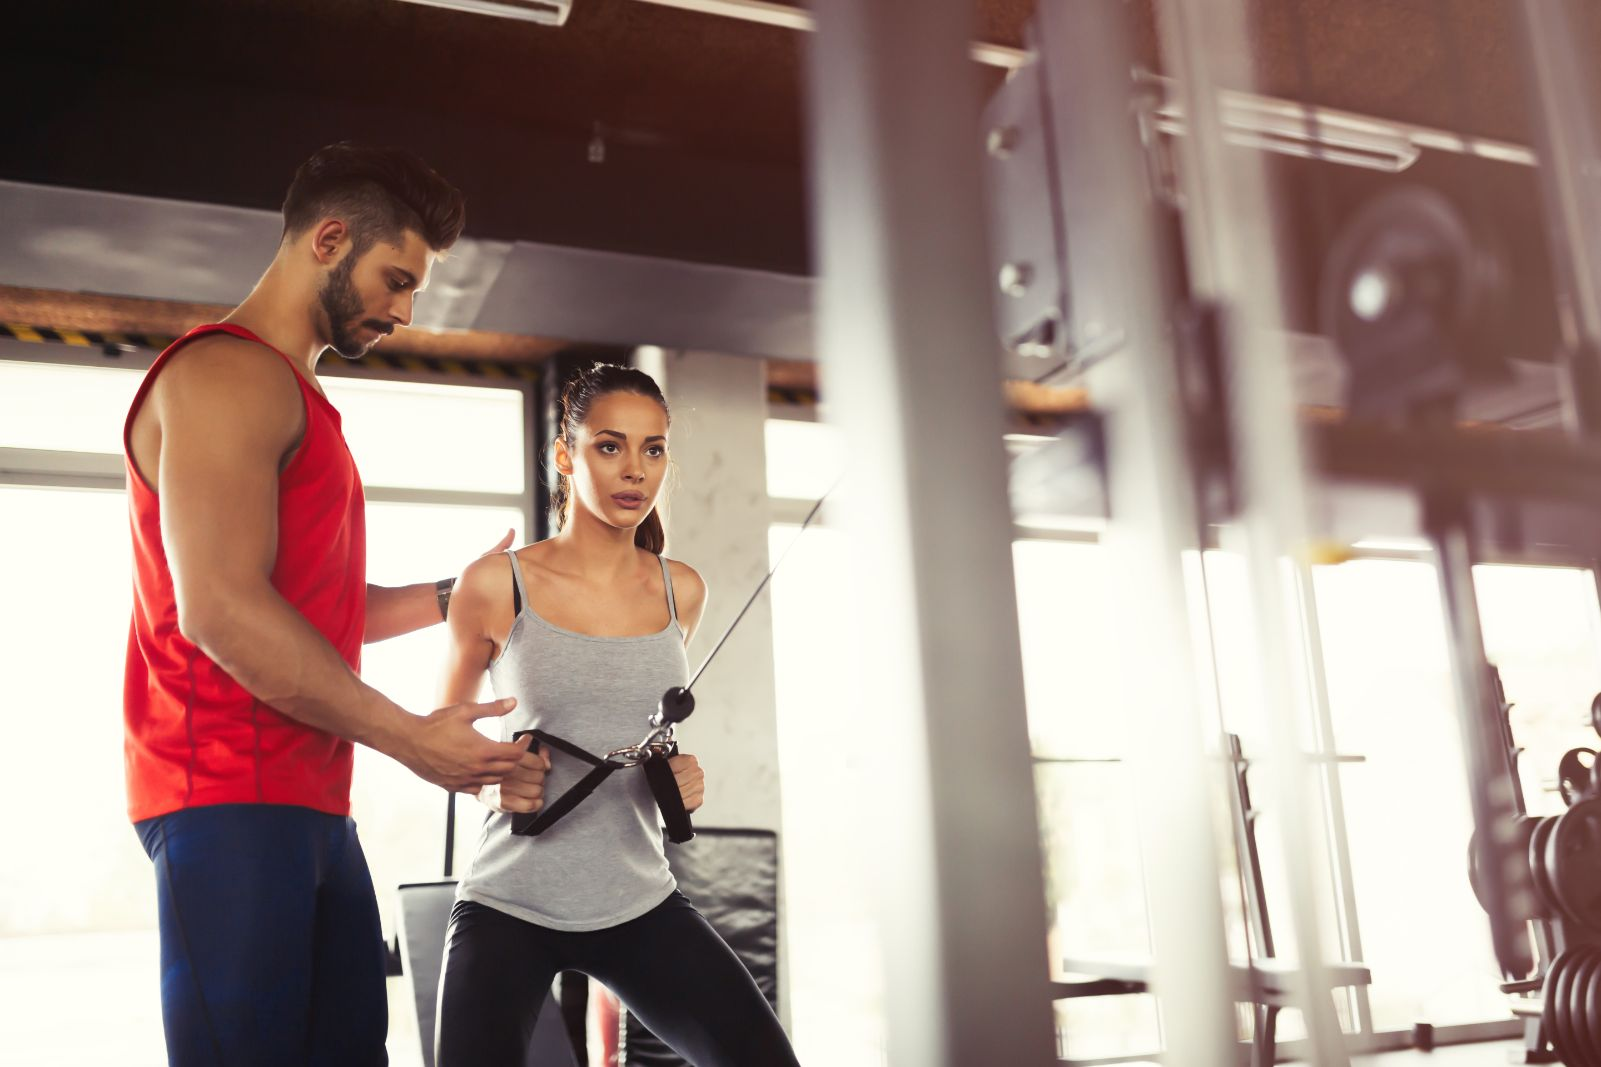 Personal Training The Mind Not Just The Body (1)